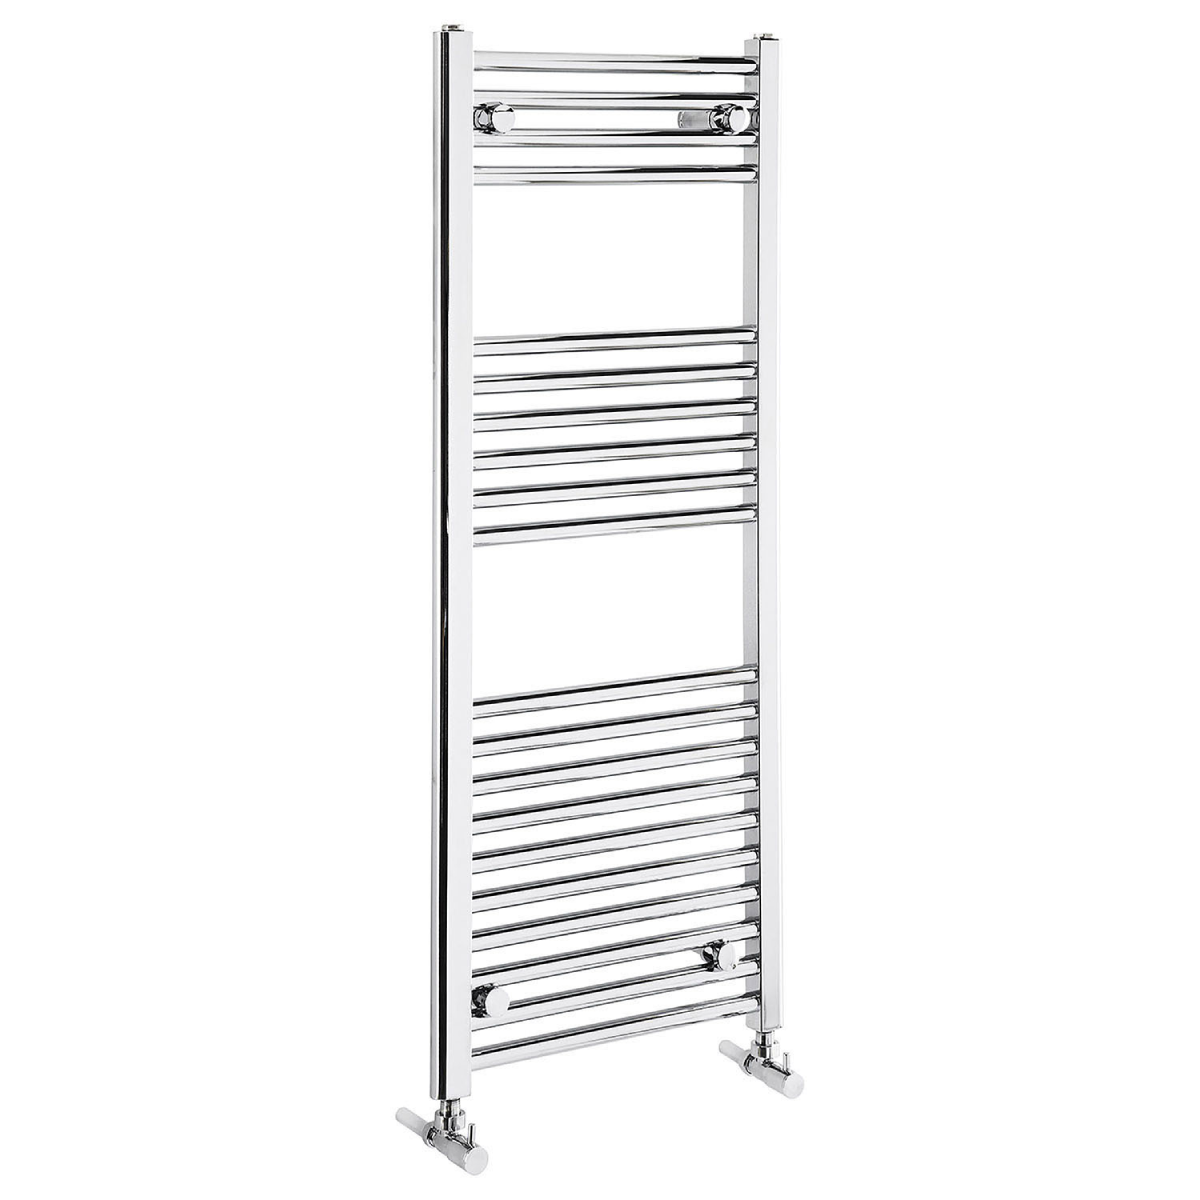 Frontline Flat Chrome Heated Towel Rail With Multiple Hanging Areas W600 H1100